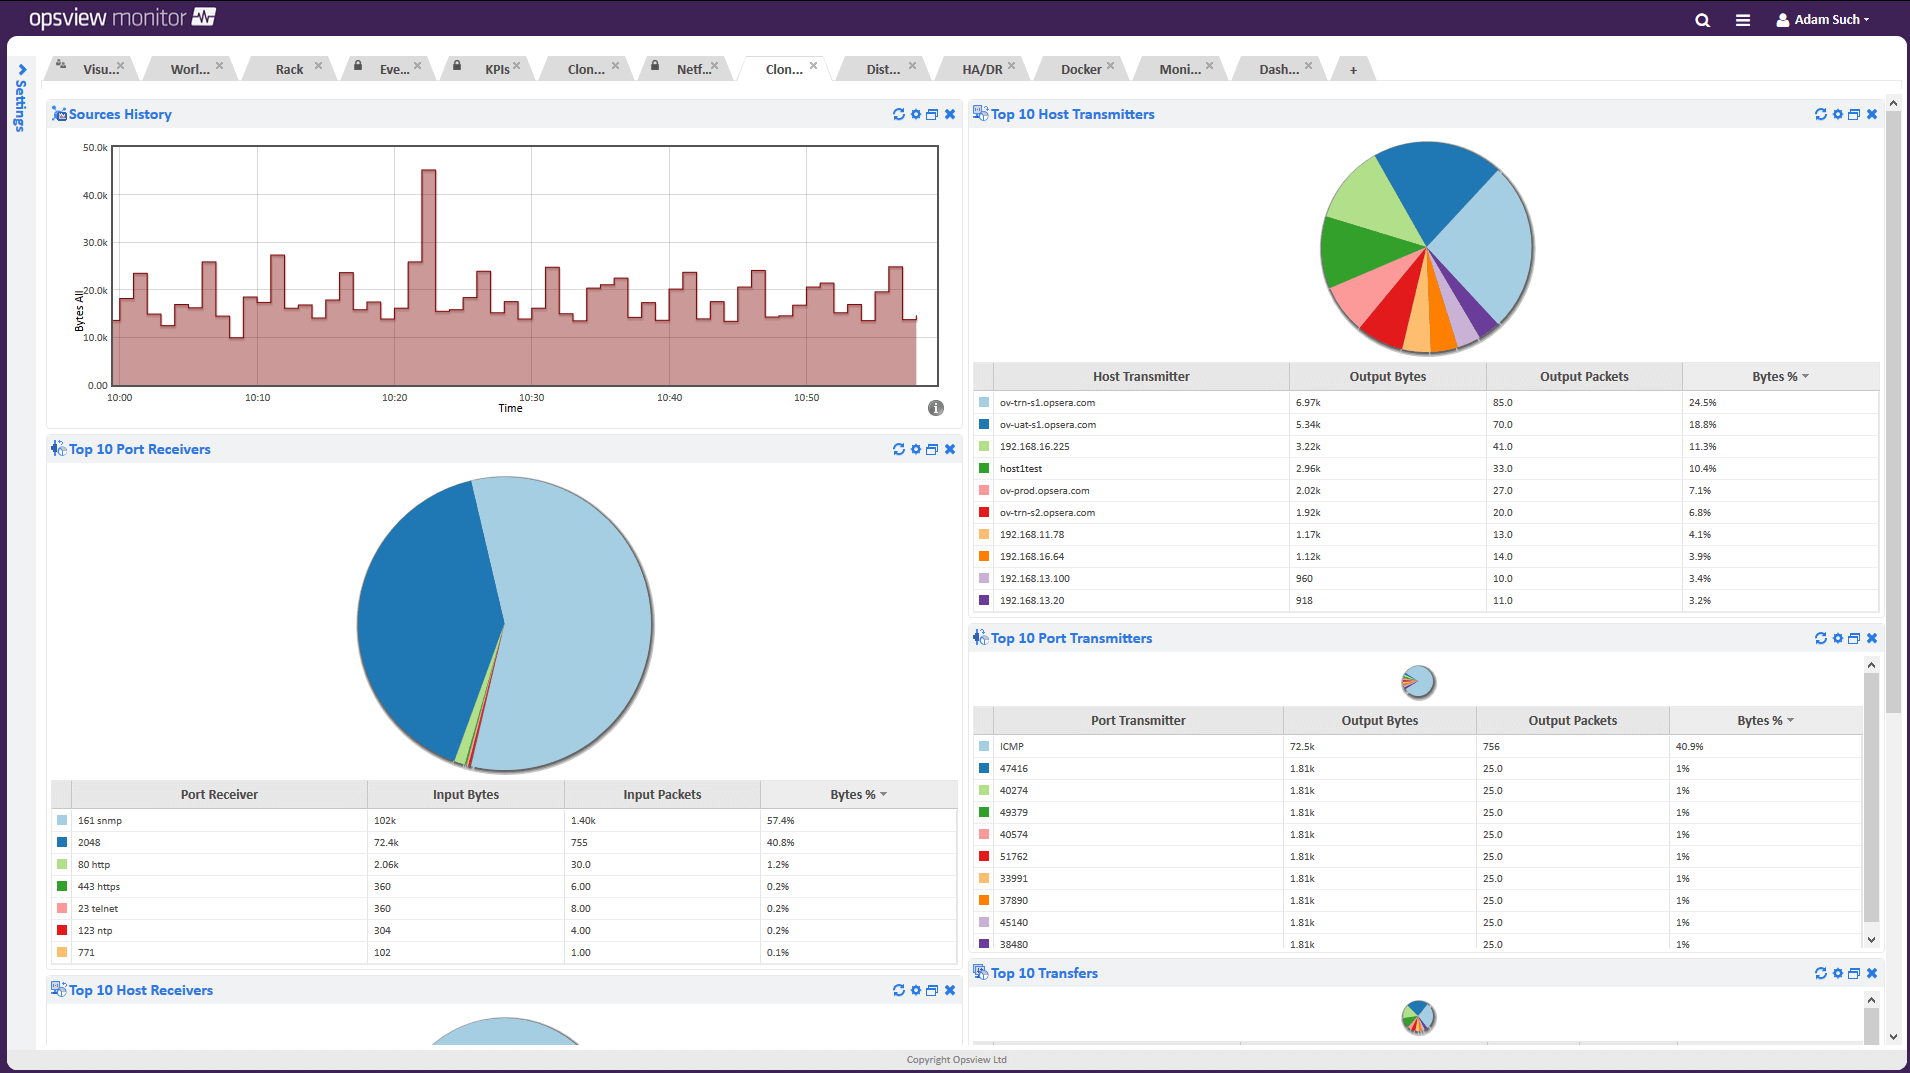 Website monitoring dashboard in Opsview